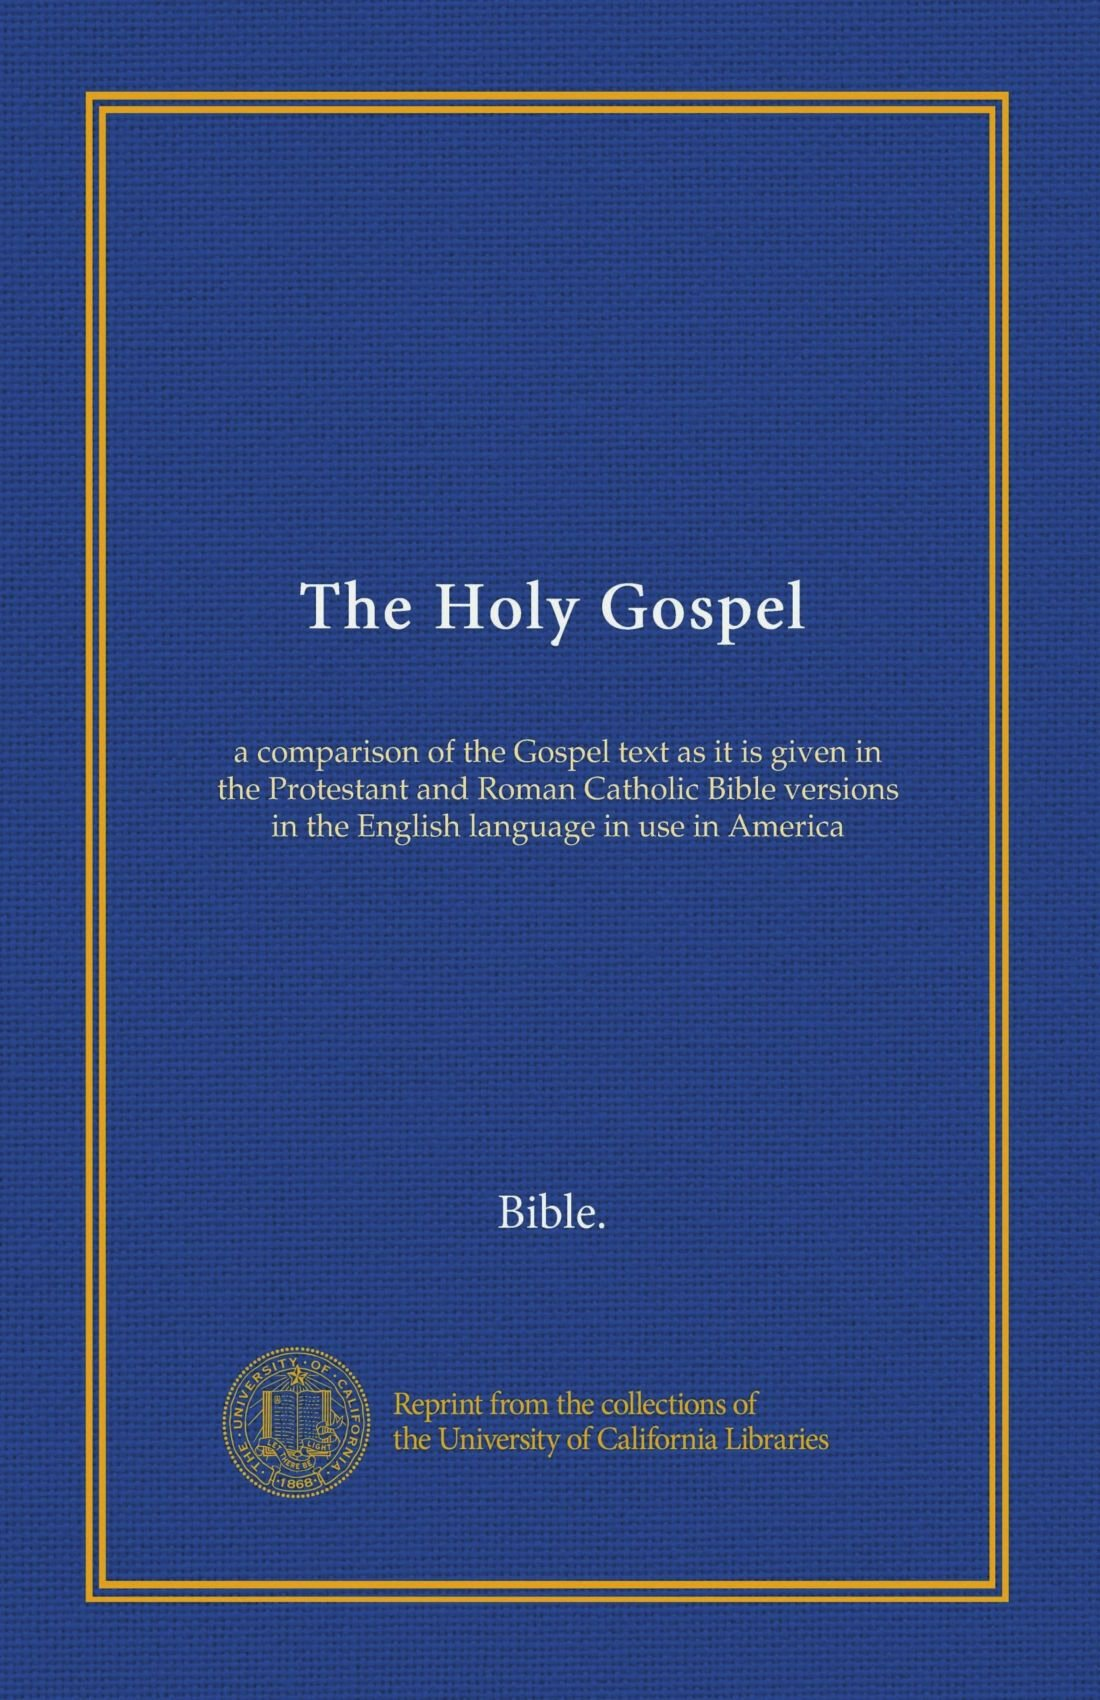 Download The Holy Gospel: a comparison of the Gospel text as it is given in the Protestant and Roman Catholic Bible versions in the English language in use in America ebook